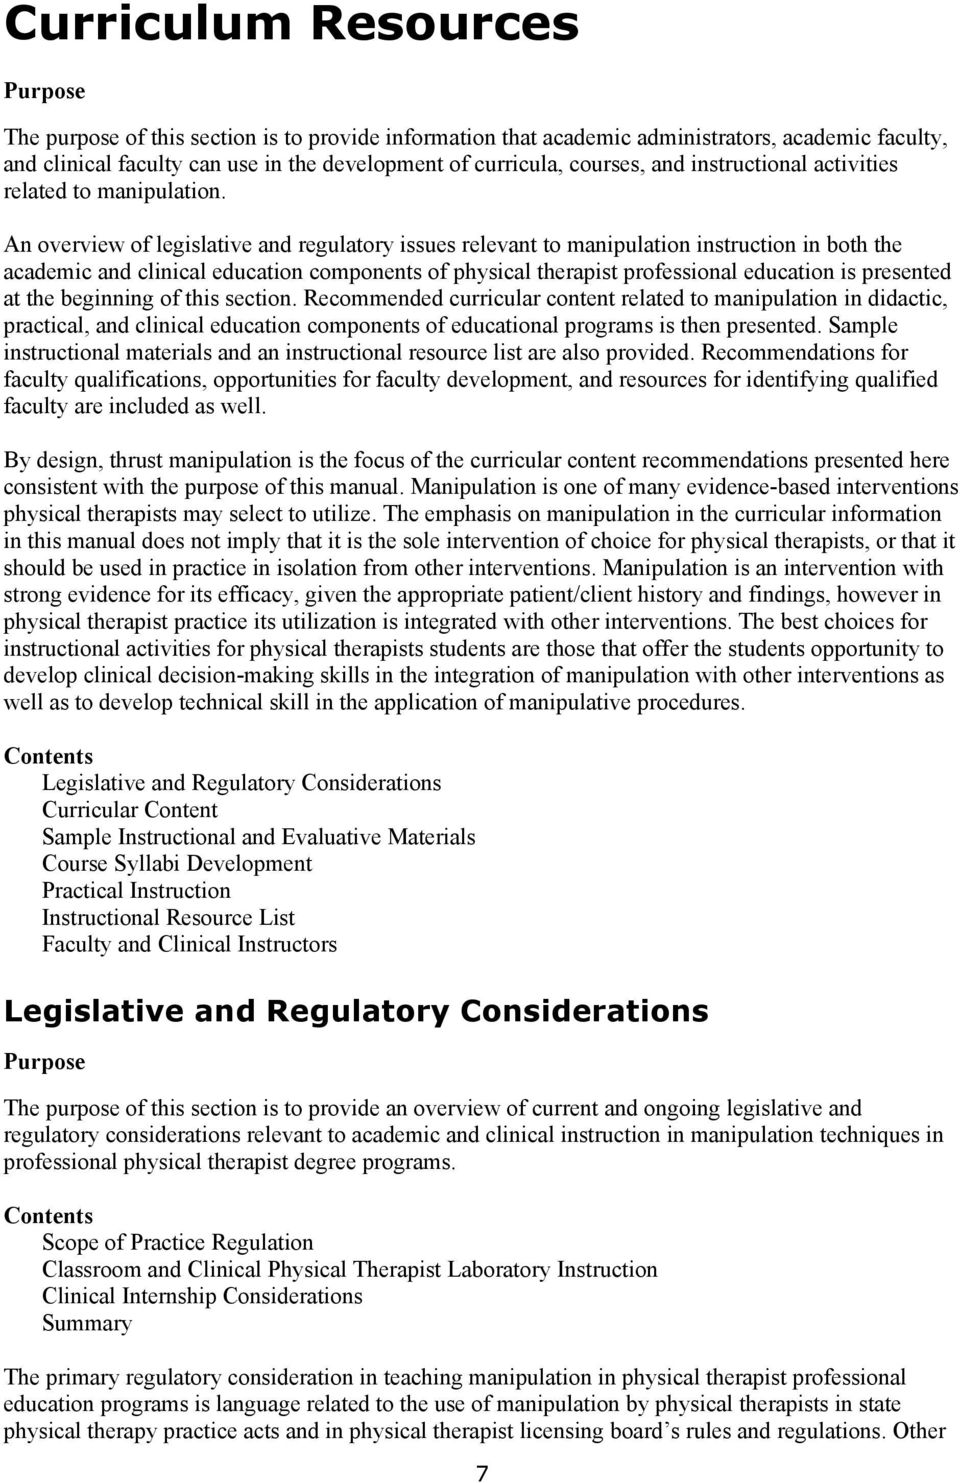 An overview of legislative and regulatory issues relevant to manipulation instruction in both the academic and clinical education components of physical therapist professional education is presented